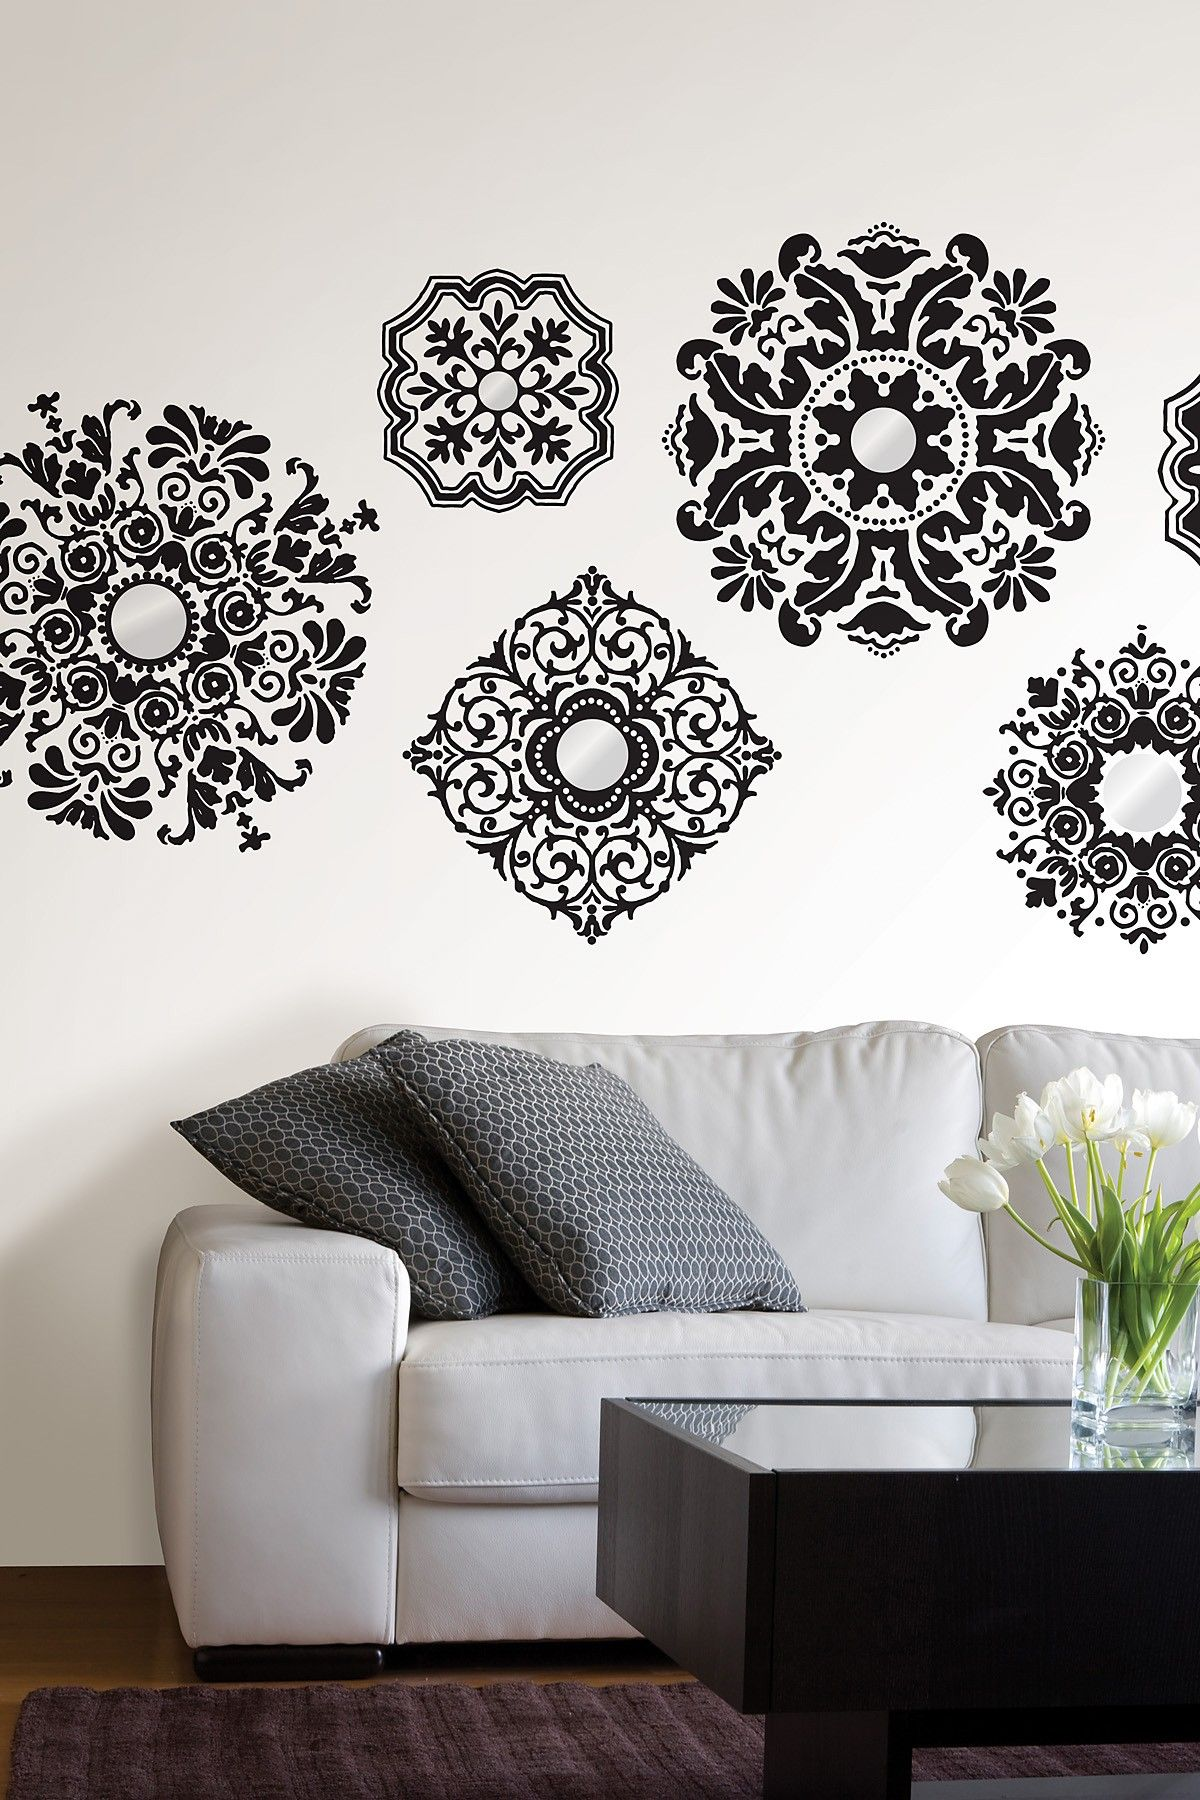 I have these exact ones in my house wallpops fun removable decals